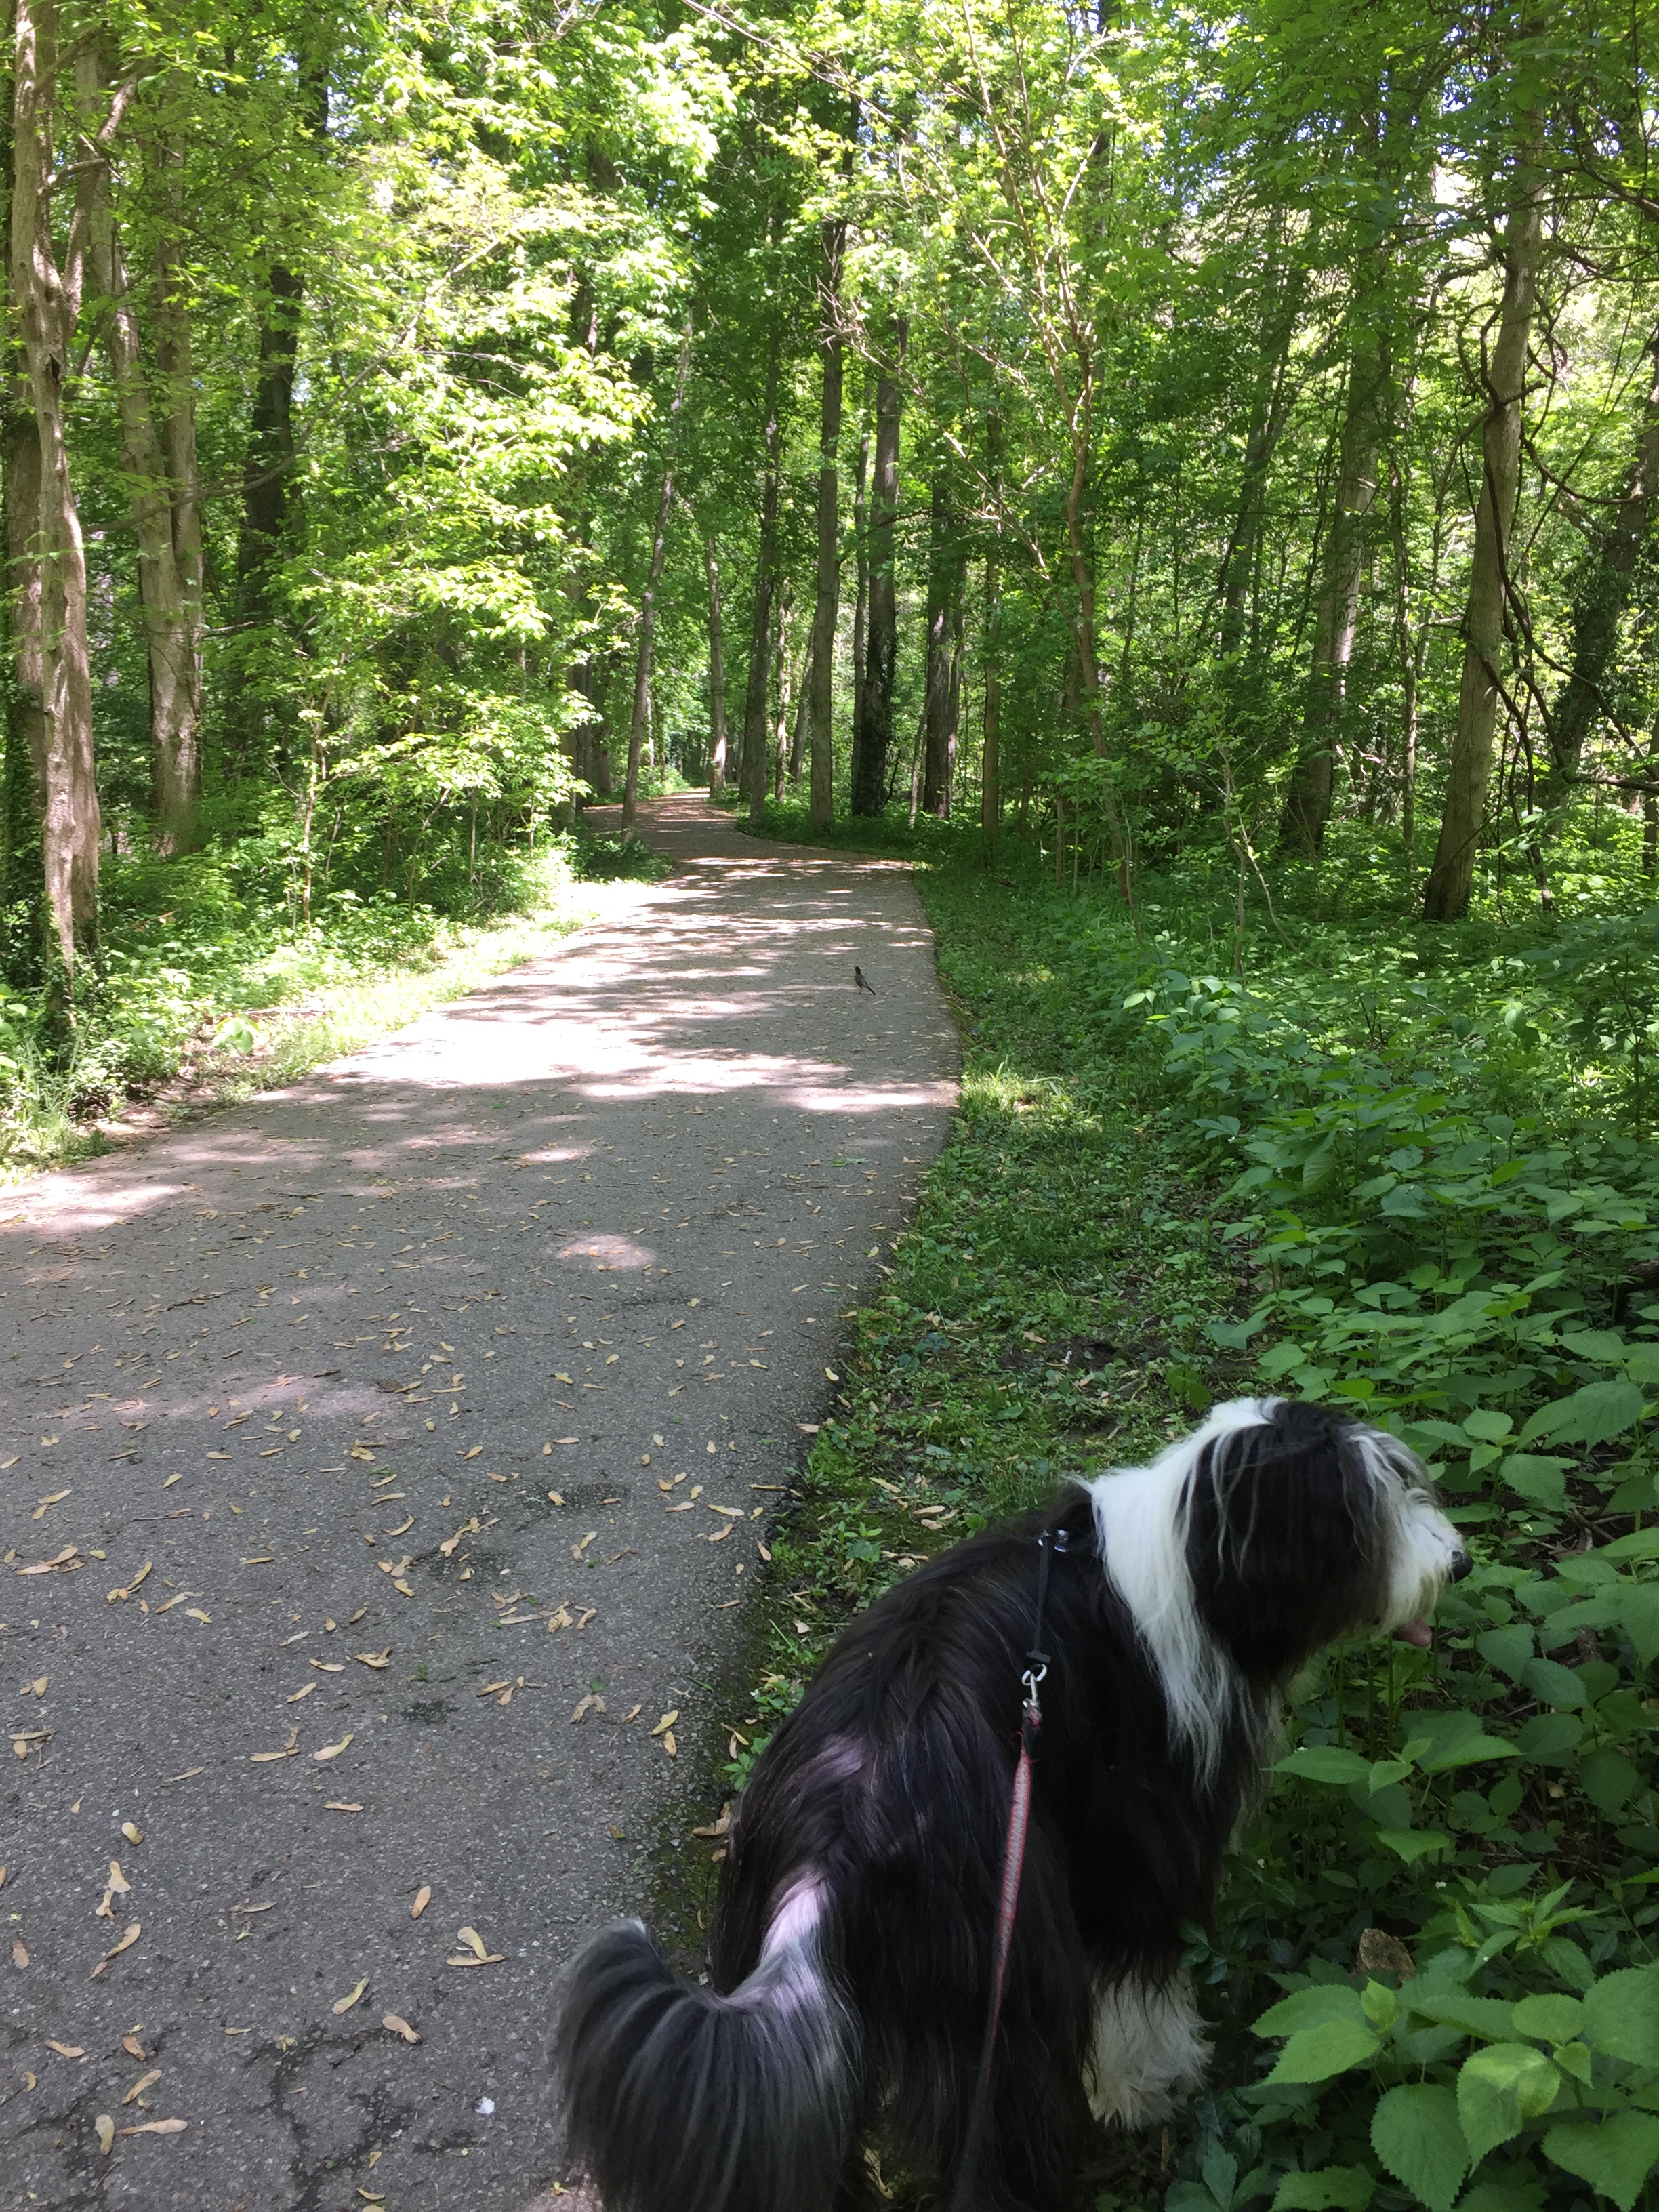 Walking the dog on a rails to trails hiking path